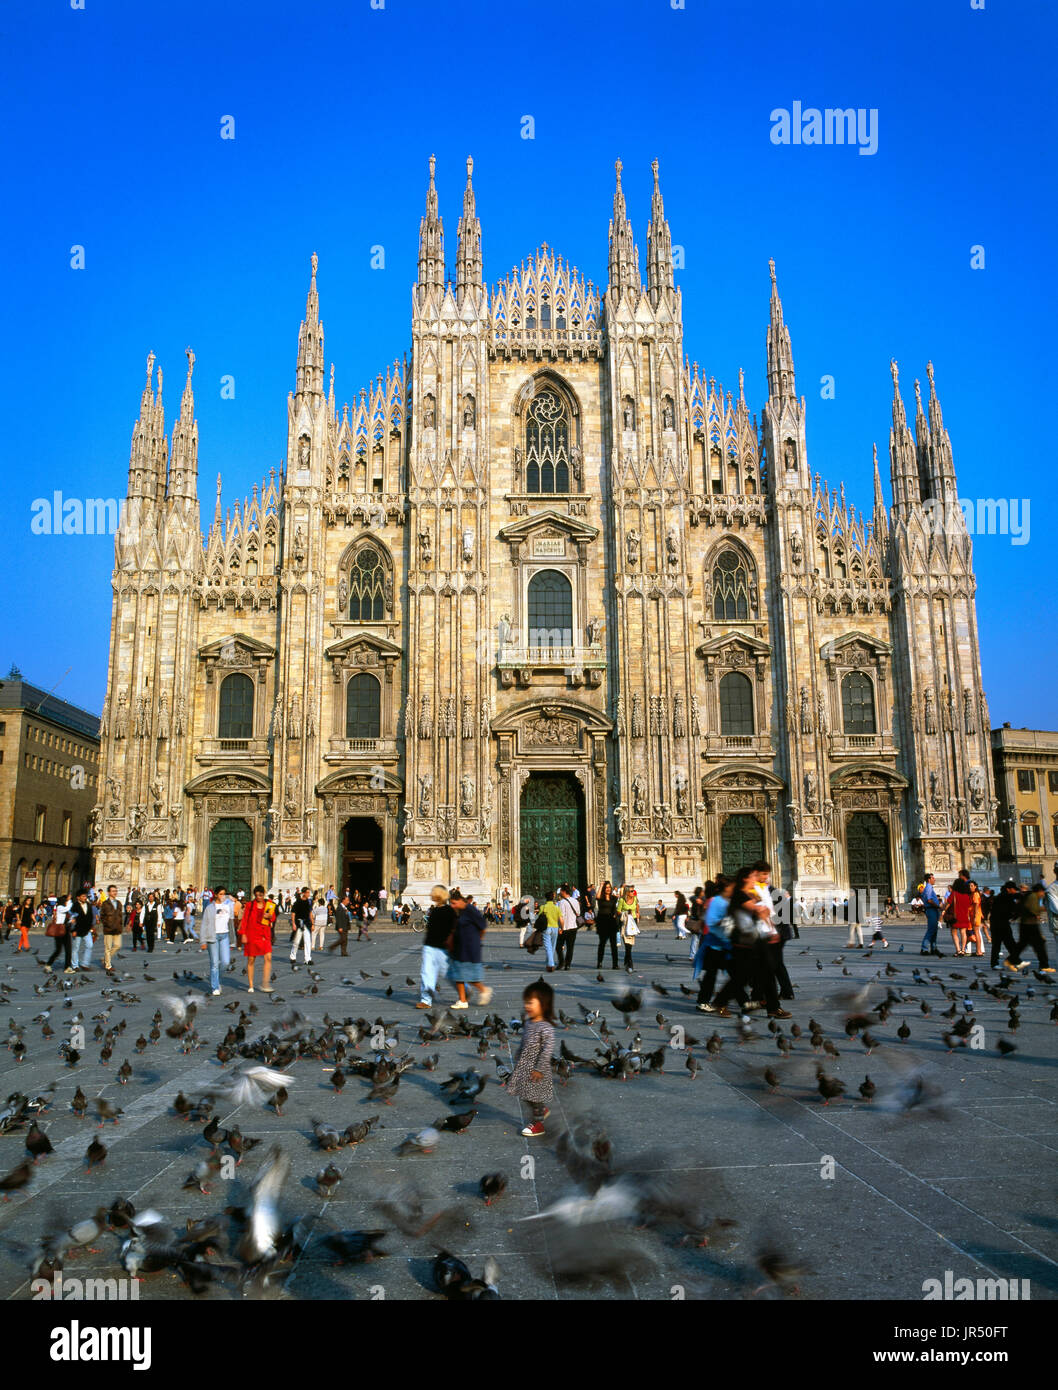 Duomo di Milano cathedral, Milan, Lombardy, Italy - Stock Image